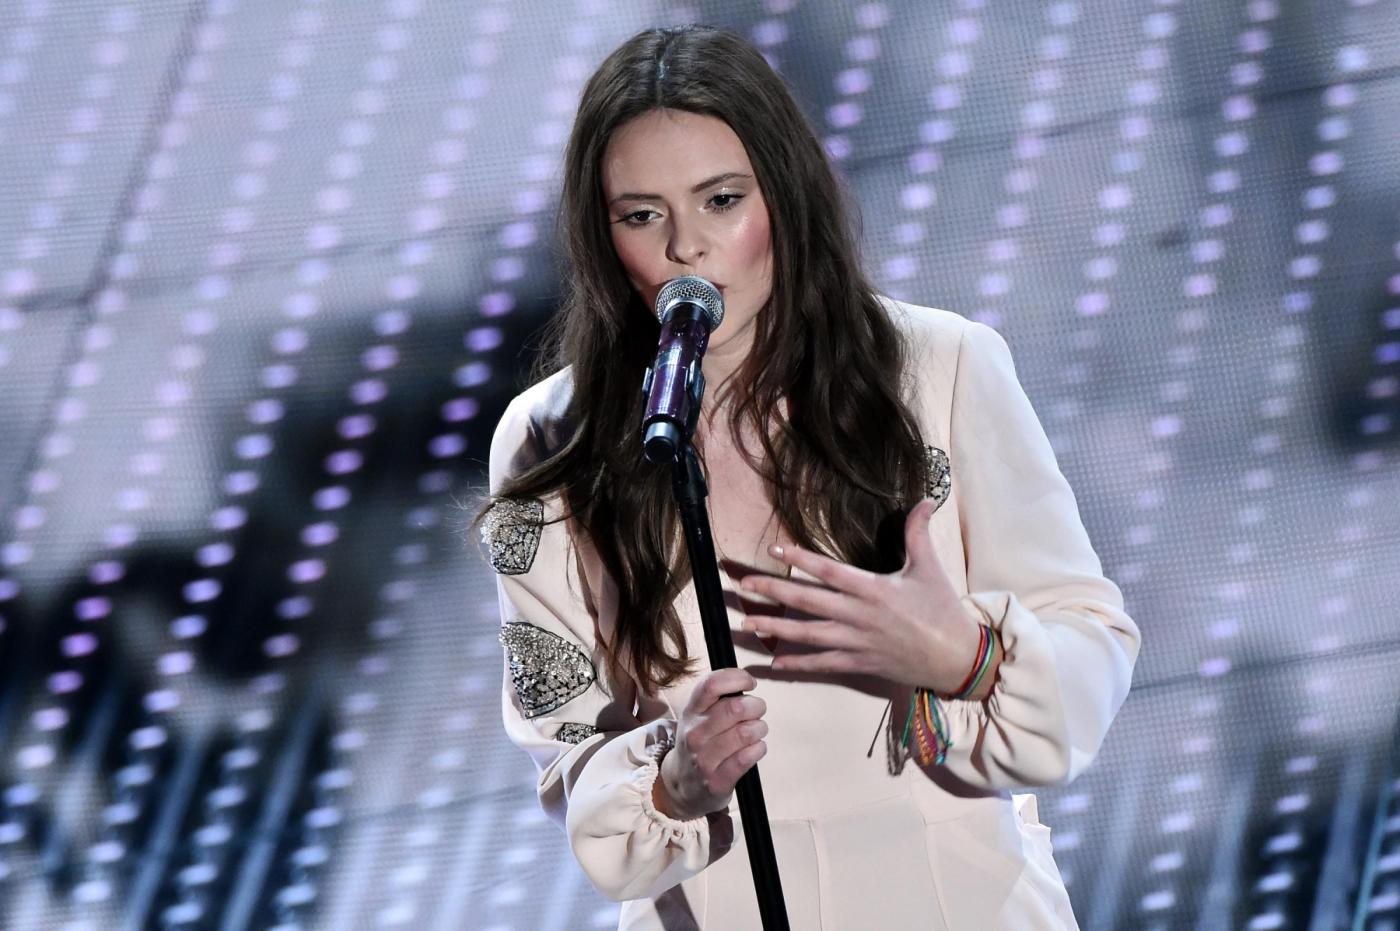 L'esibizione di Francesca Michielin all'Eurovision Song Contest 2016